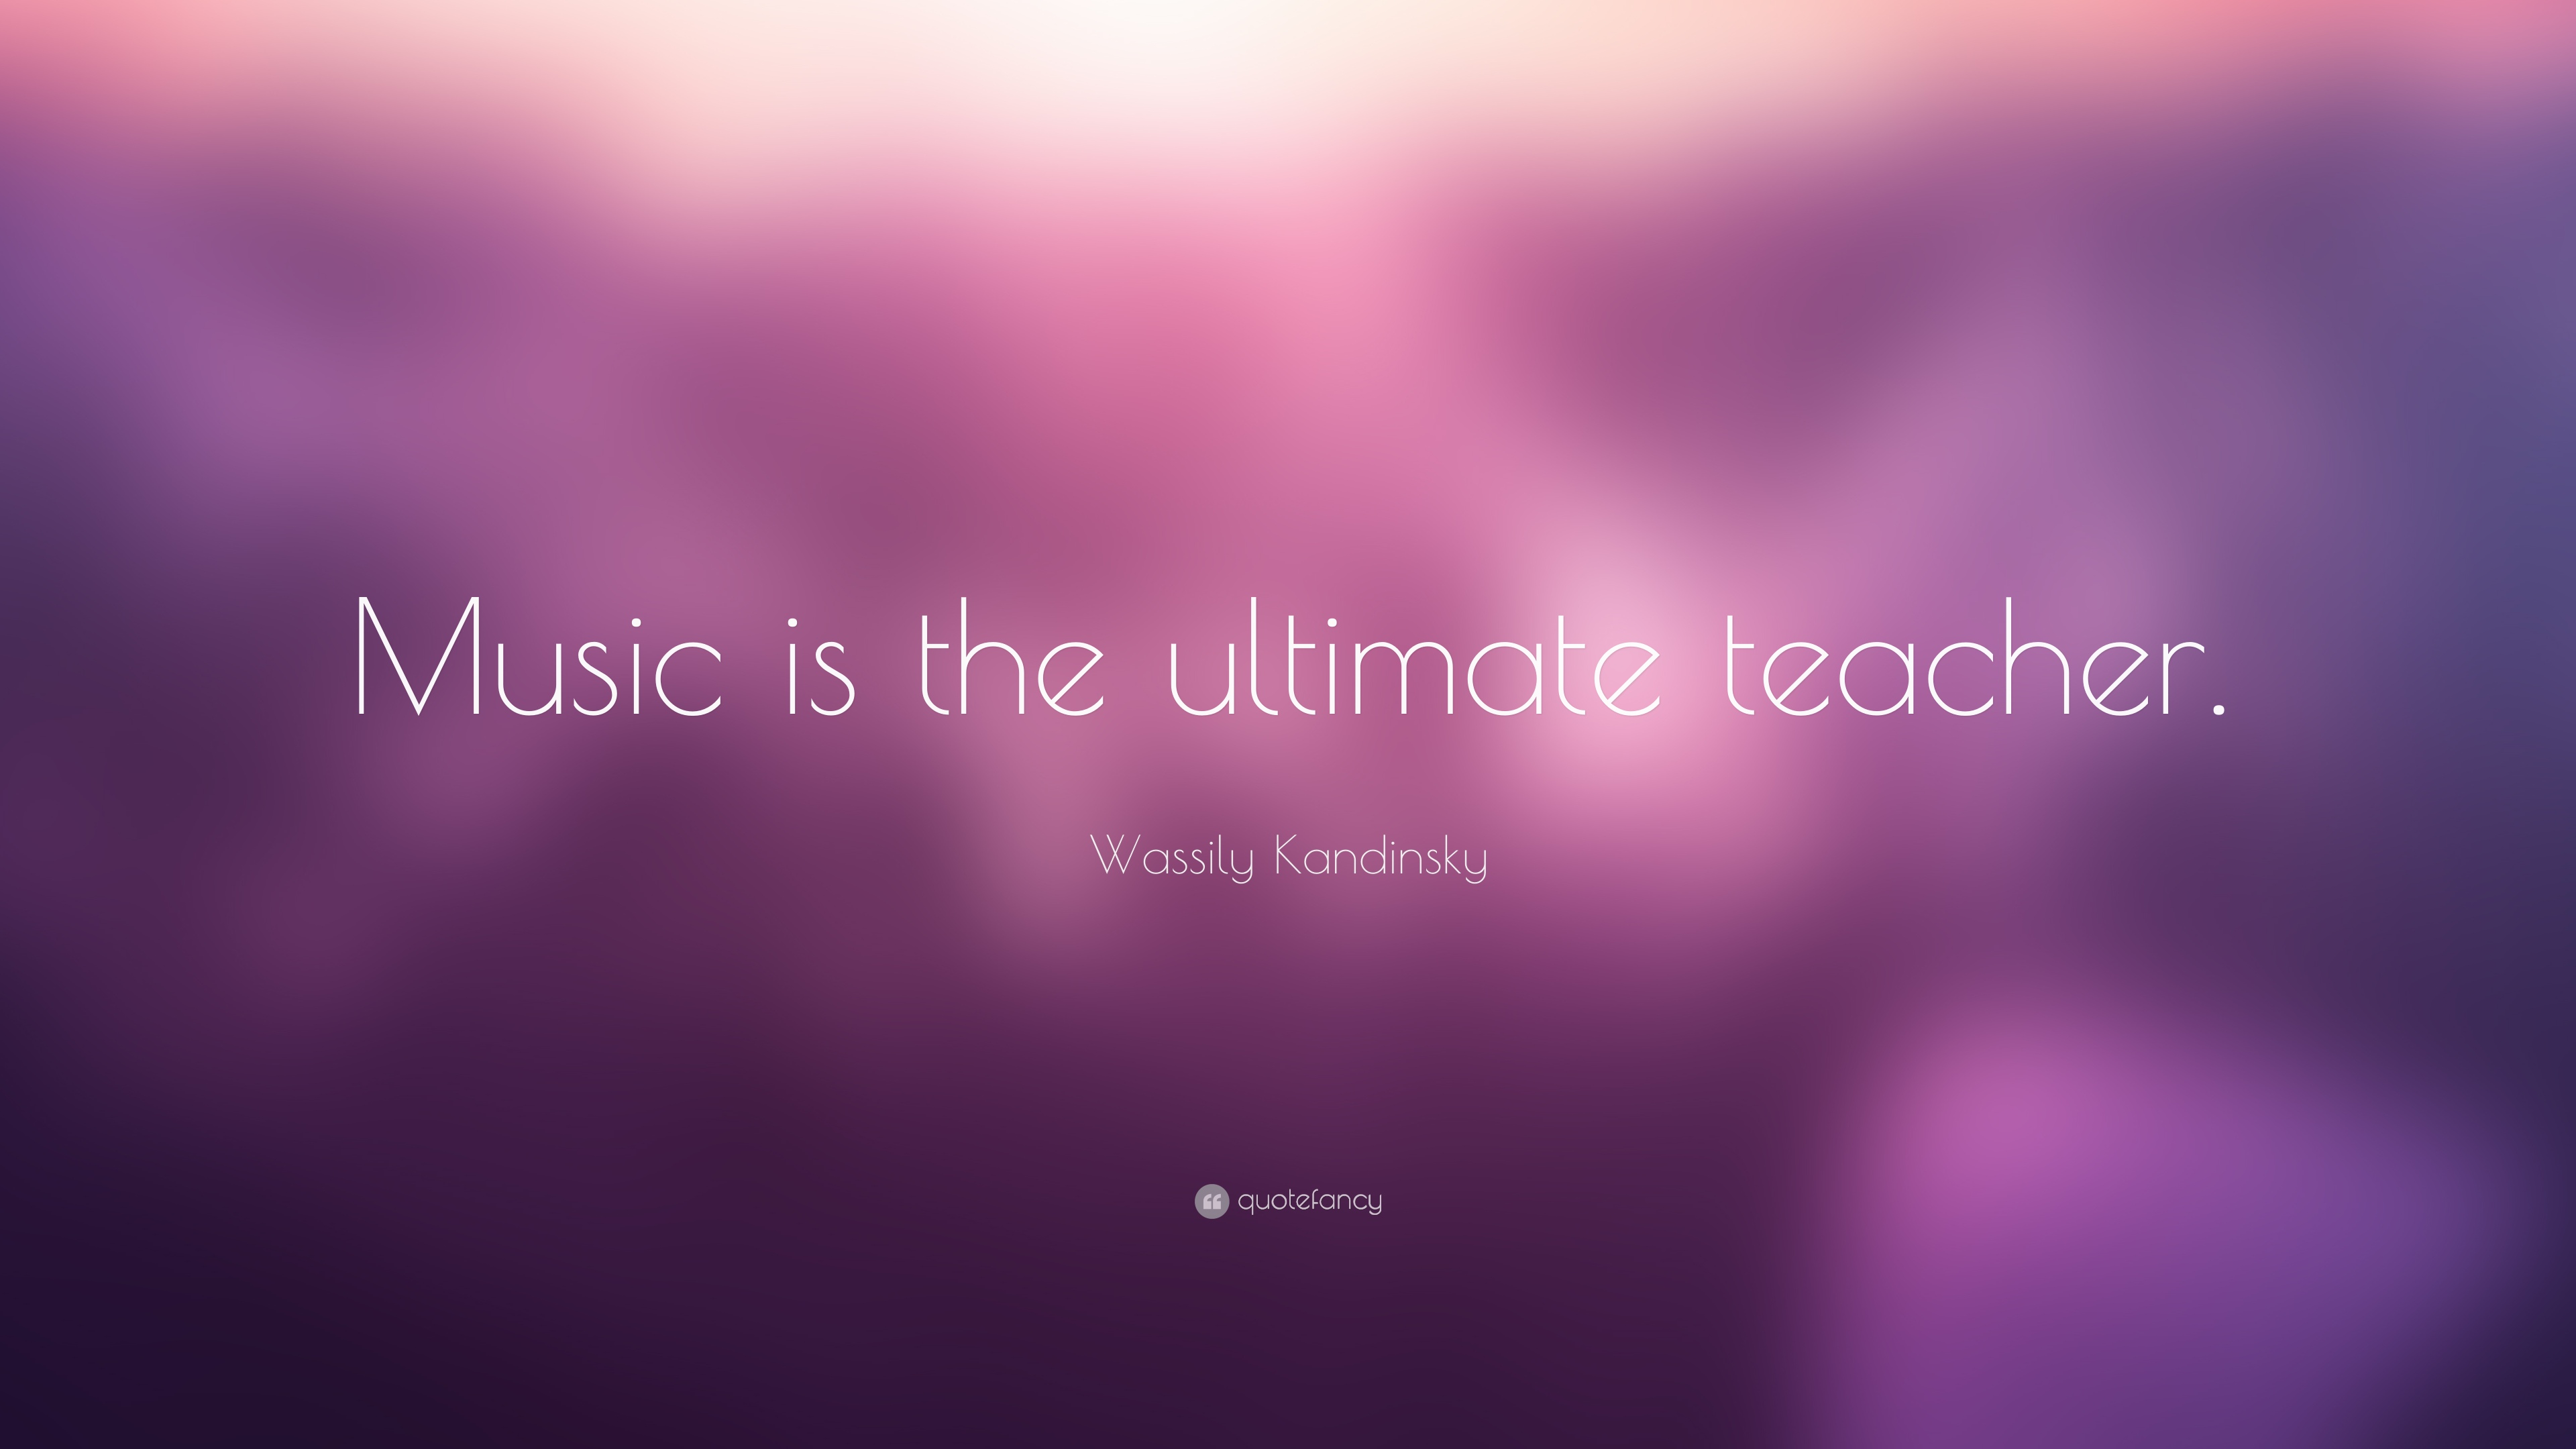 Wassily Kandinsky Quotes (81 wallpapers) - Quotefancy